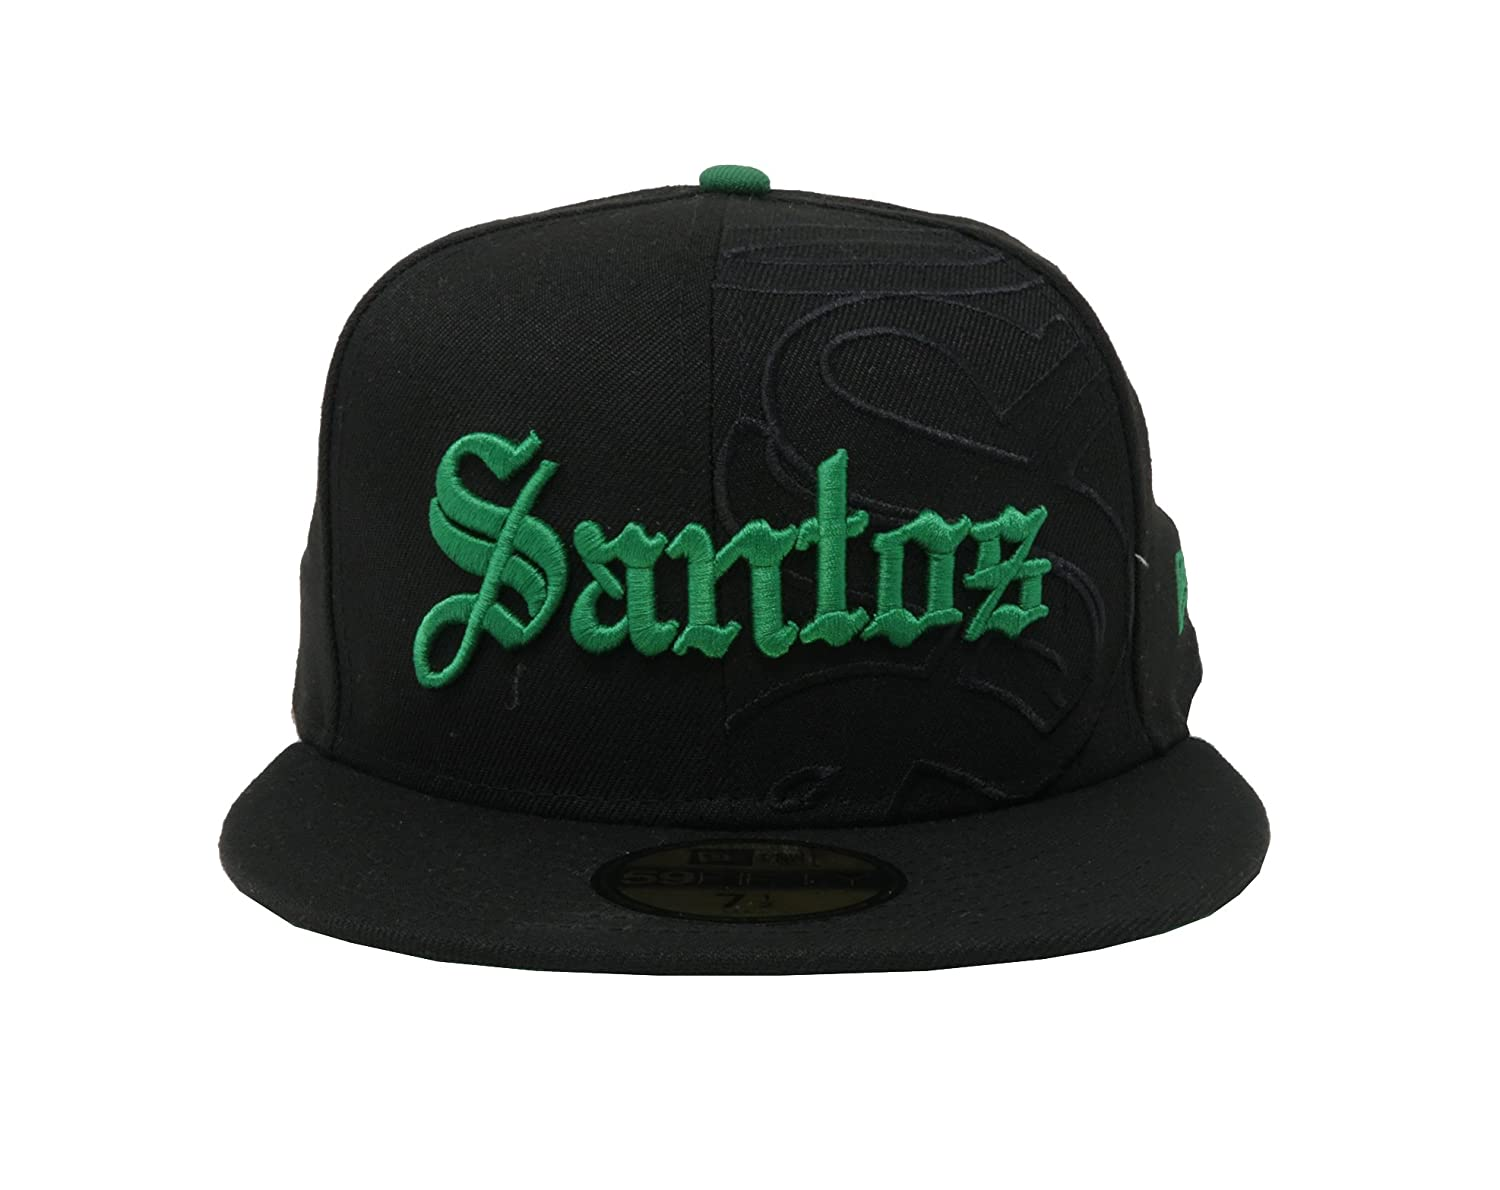 New Era 59Fifty Hat Santos Laguna Soccer Club Liga MX Grand Logo Black Fitted Cap at Amazon Mens Clothing store: